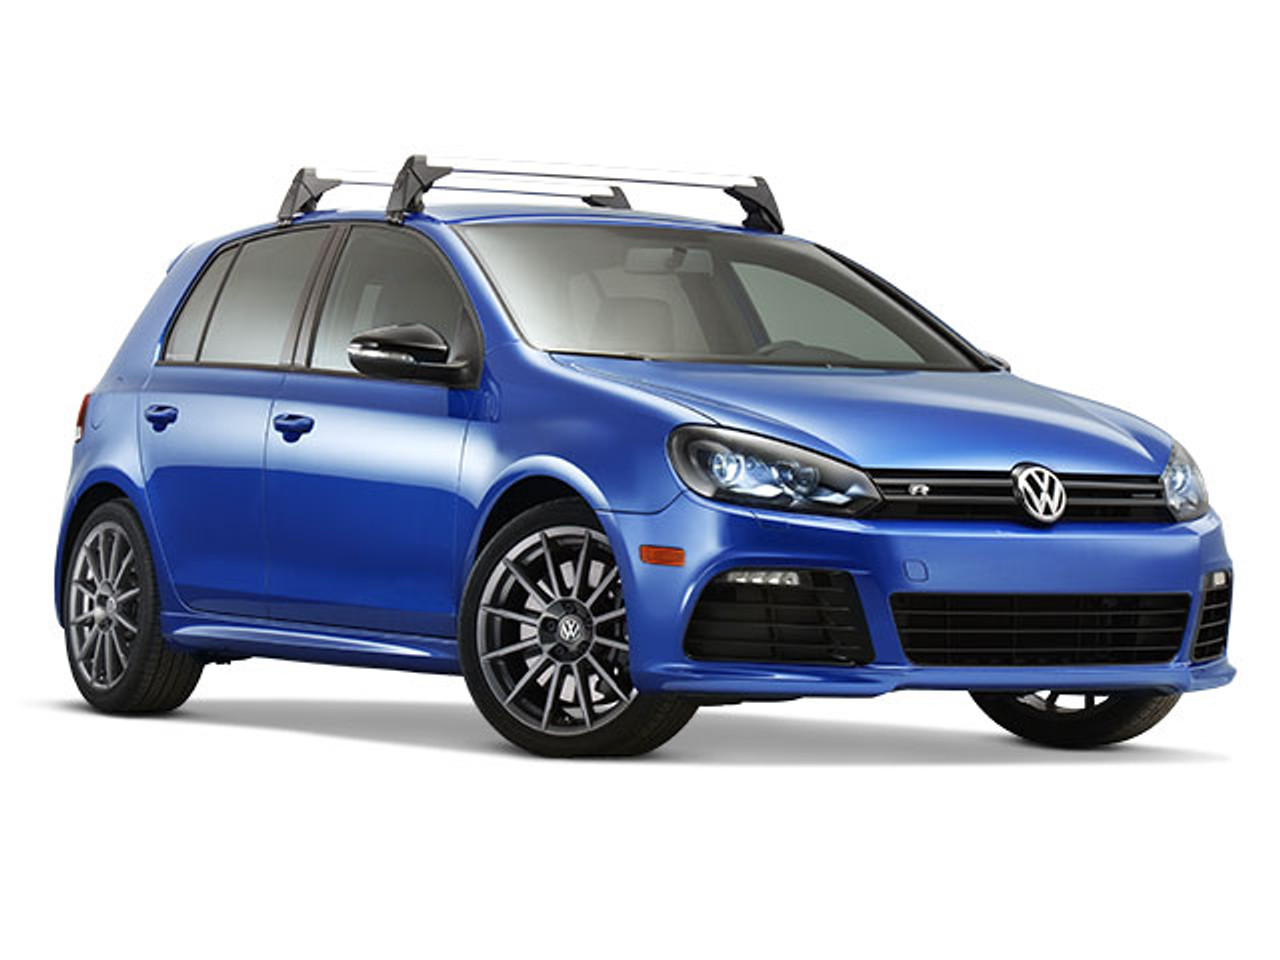 Vw Golf Roof Rack Bars Free Shipping Vw Accessories Shop